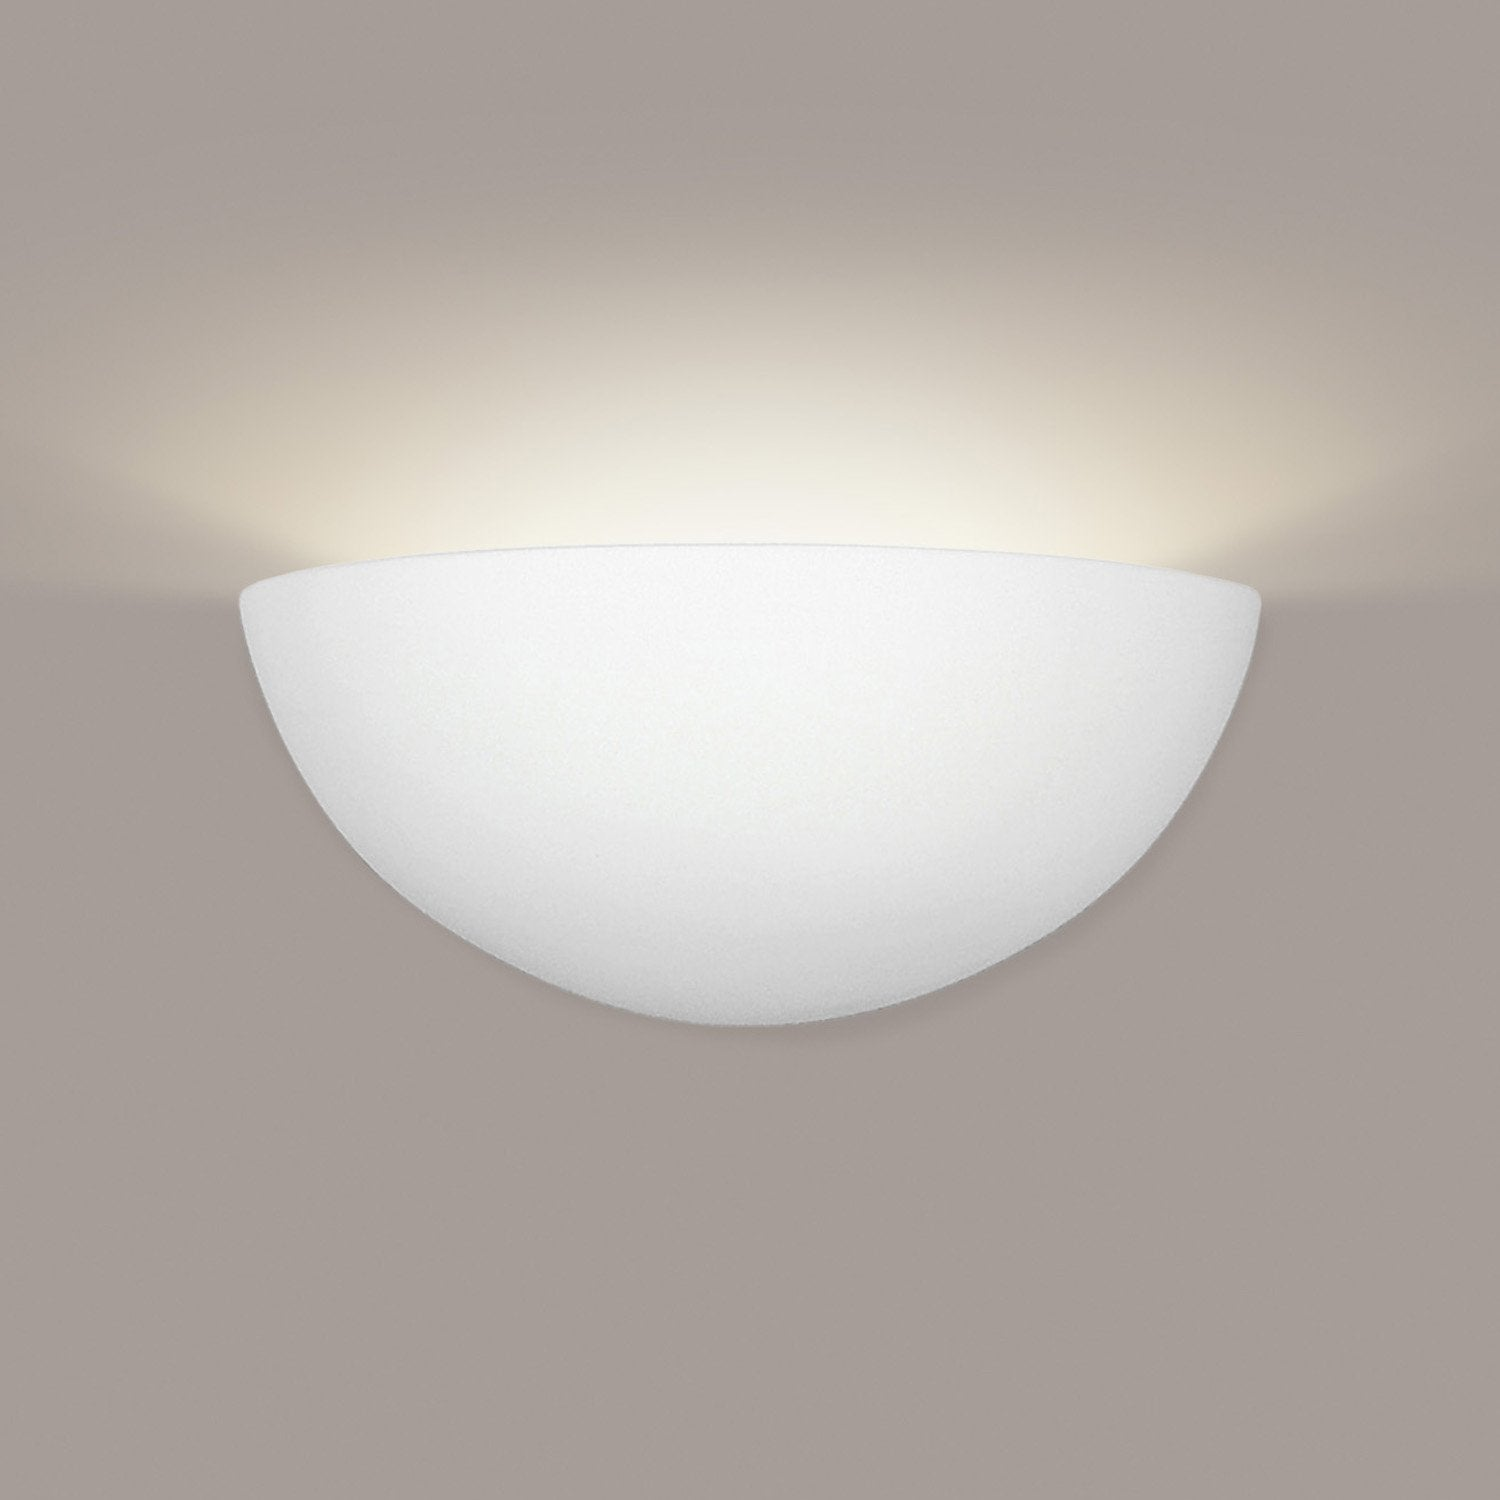 A19 302-PS Islands of Light Collection Thera Pistachio Finish Wall Sconce